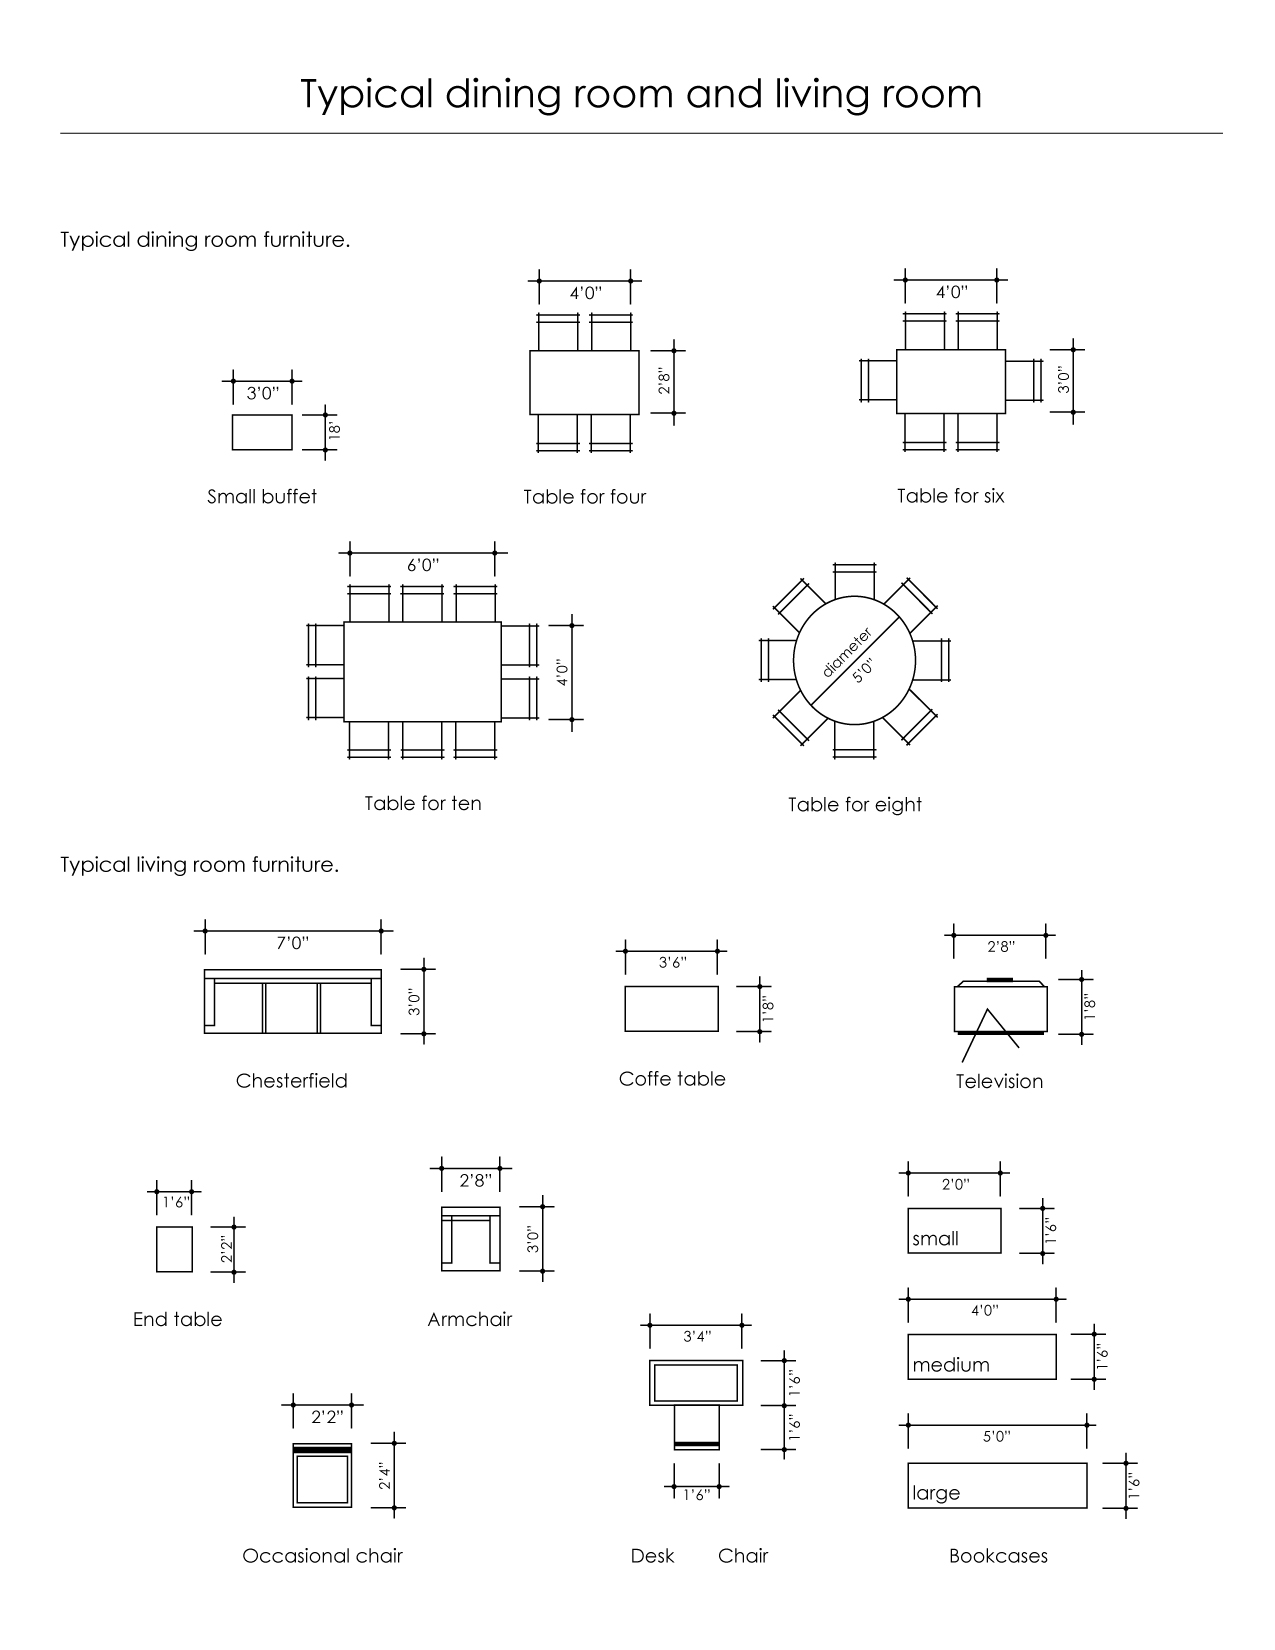 Living Room Furniture Dimensions typical loveseat dimensions. how to interior design a living room